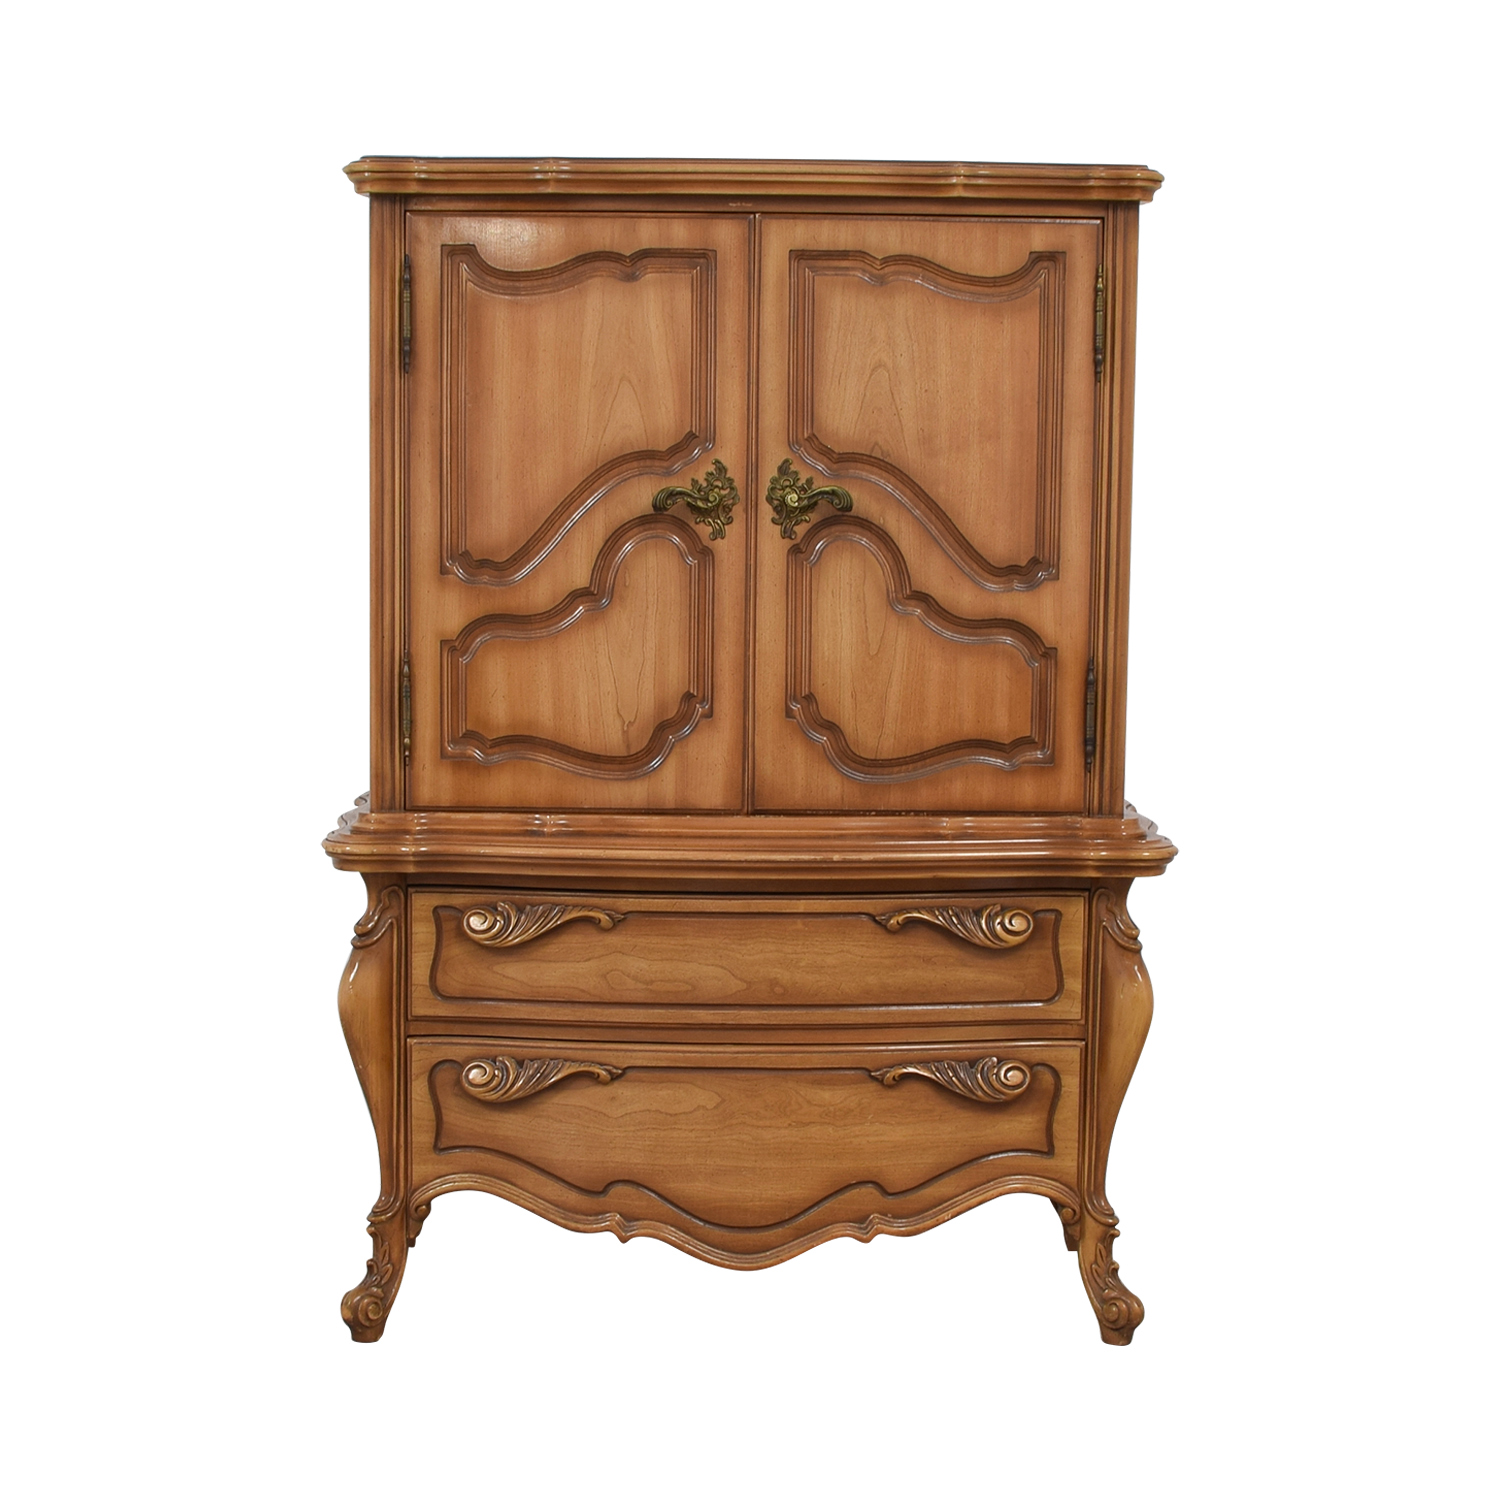 buy Dovetailed Carved Wood Chest of Drawers Armoire